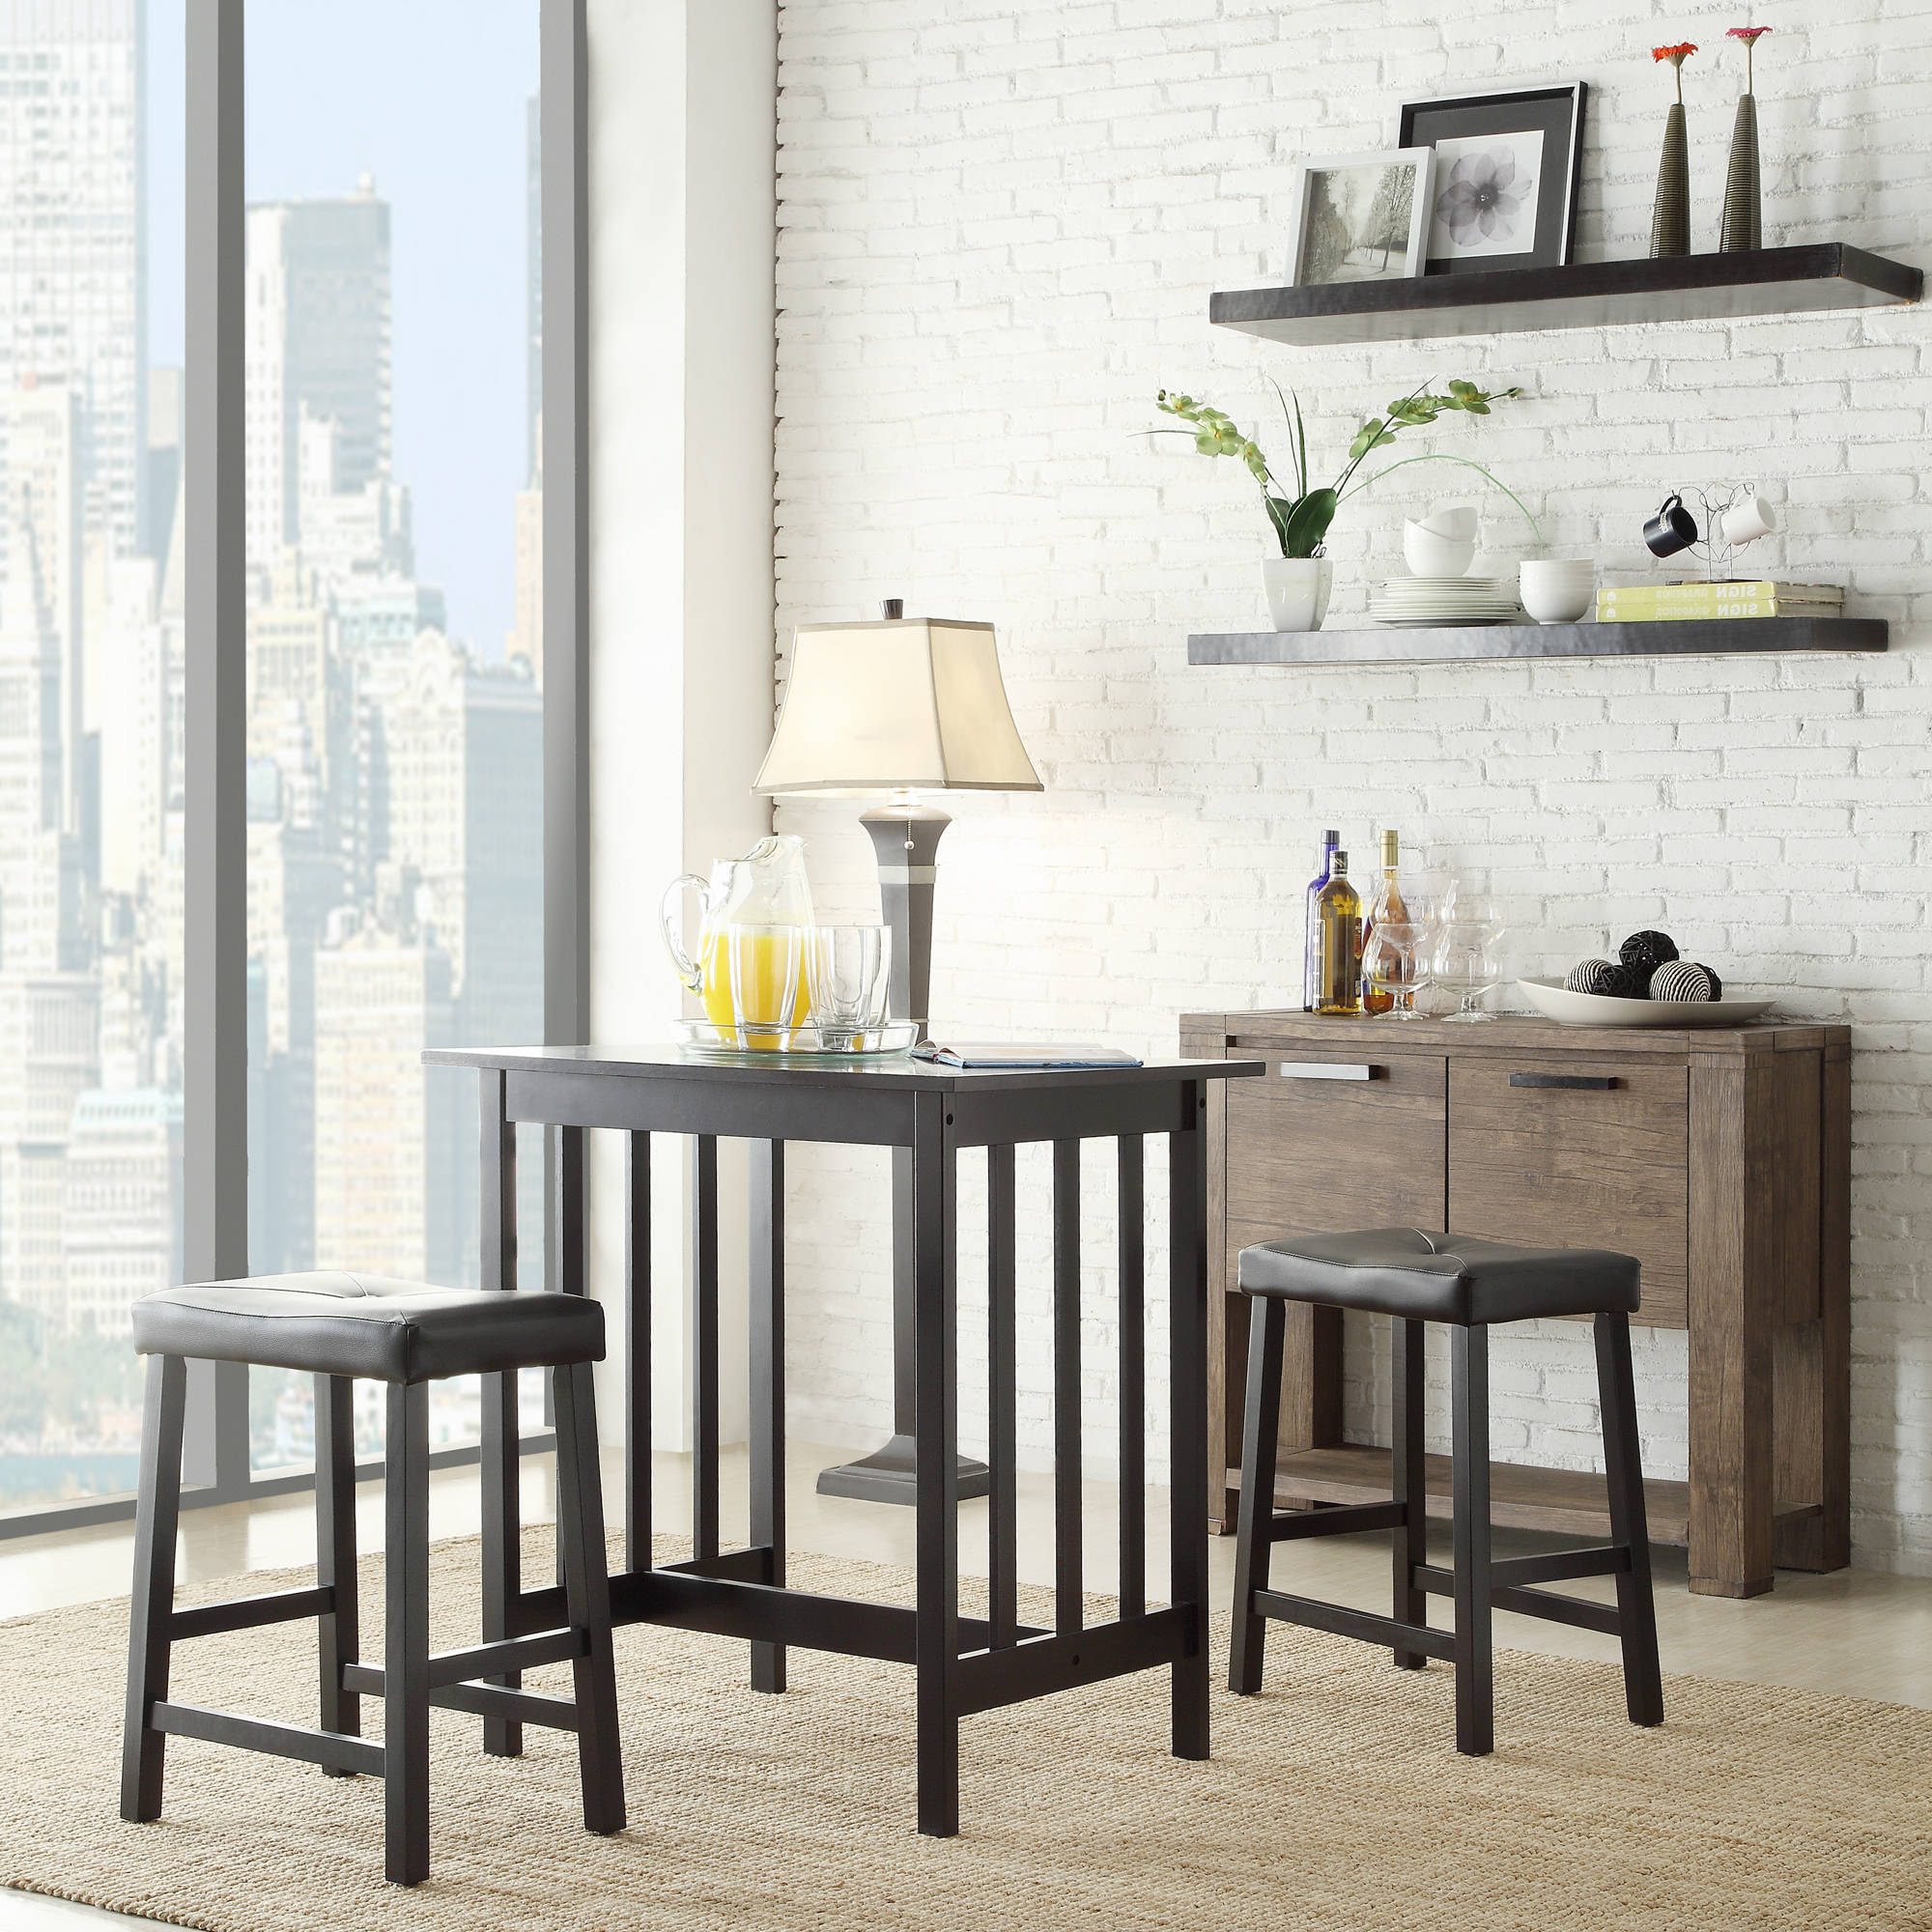 Weston Home Scottsdale 3 Piece Dining Set, Multiple Colors Pertaining To Well Liked 3 Piece Breakfast Dining Sets (View 15 of 20)